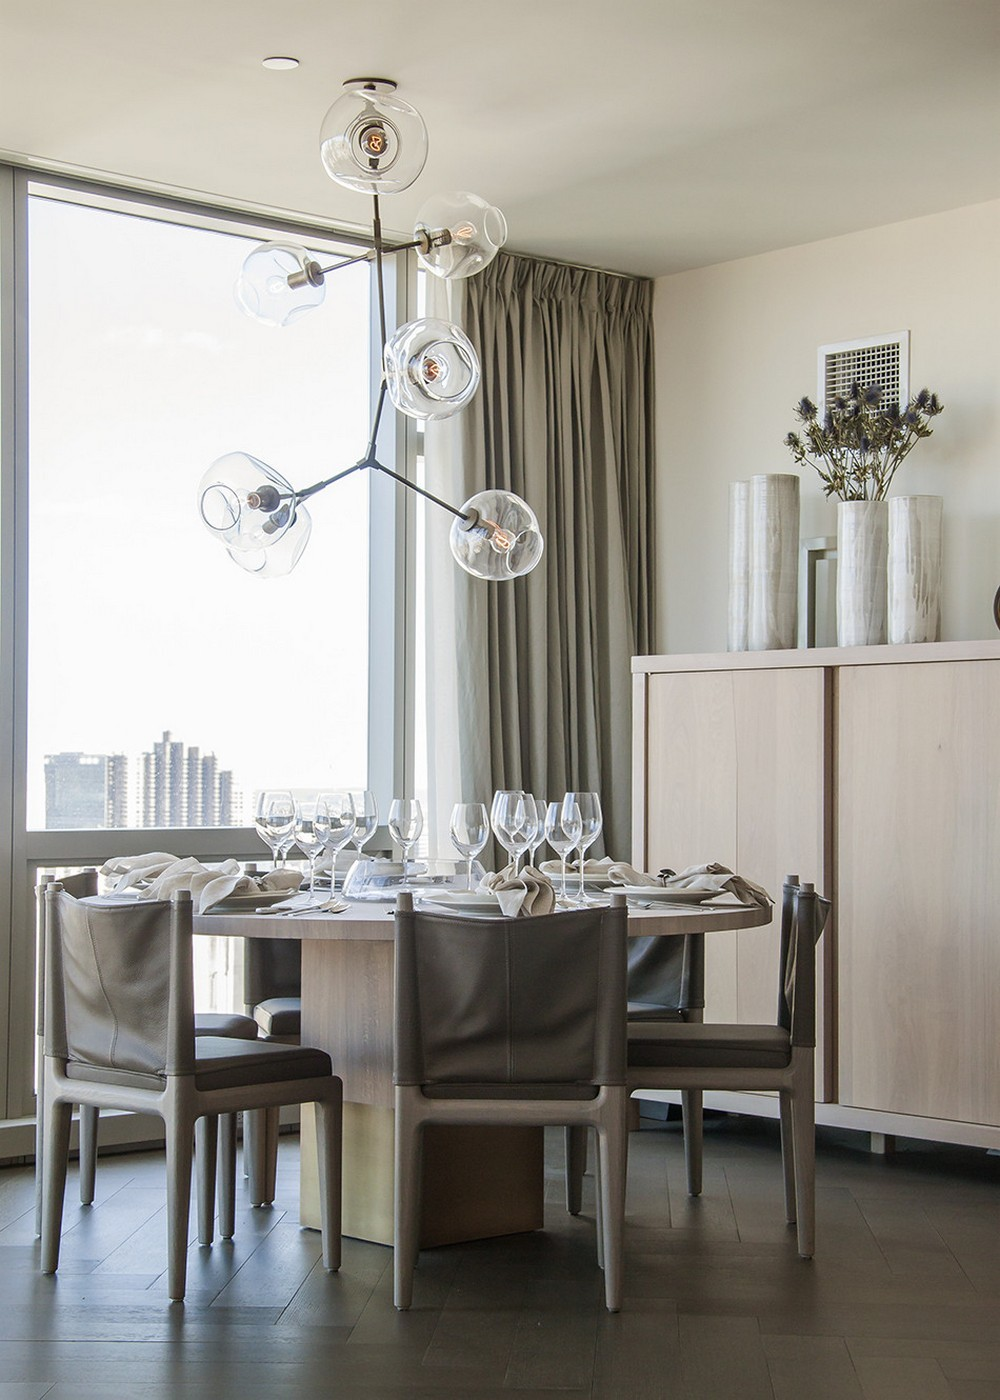 yabu pushelberg Dining Room Projects by Yabu Pushelberg 4 Lonny